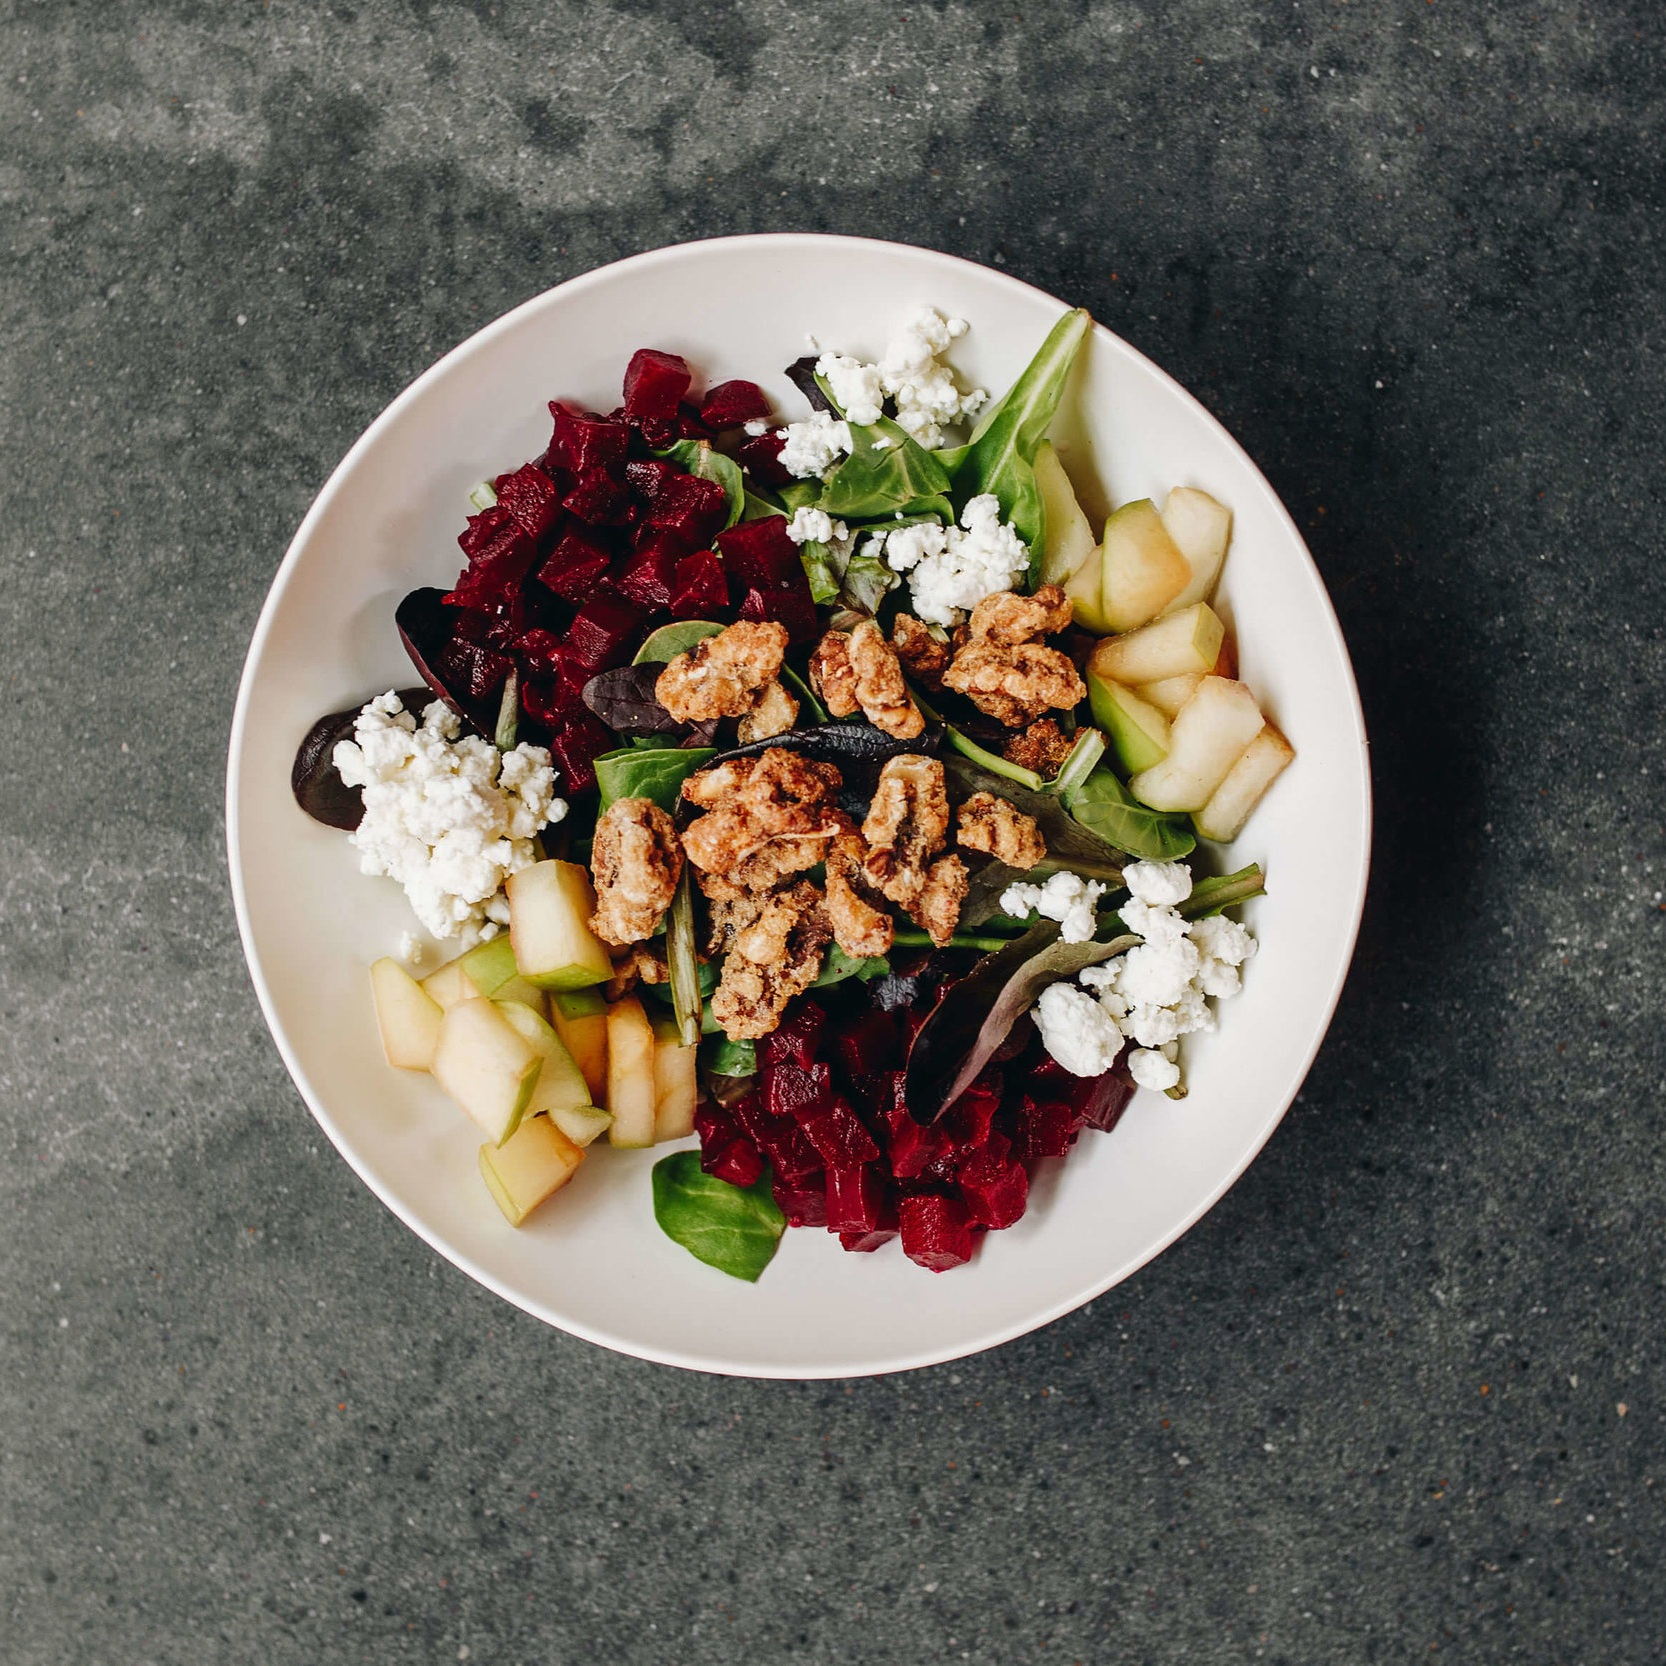 LOCAL ROOTS - Mixed greens, roasted beets, citrus-marinated fennel, local goat cheese, caramelized walnuts, maple sherry dressing8.50